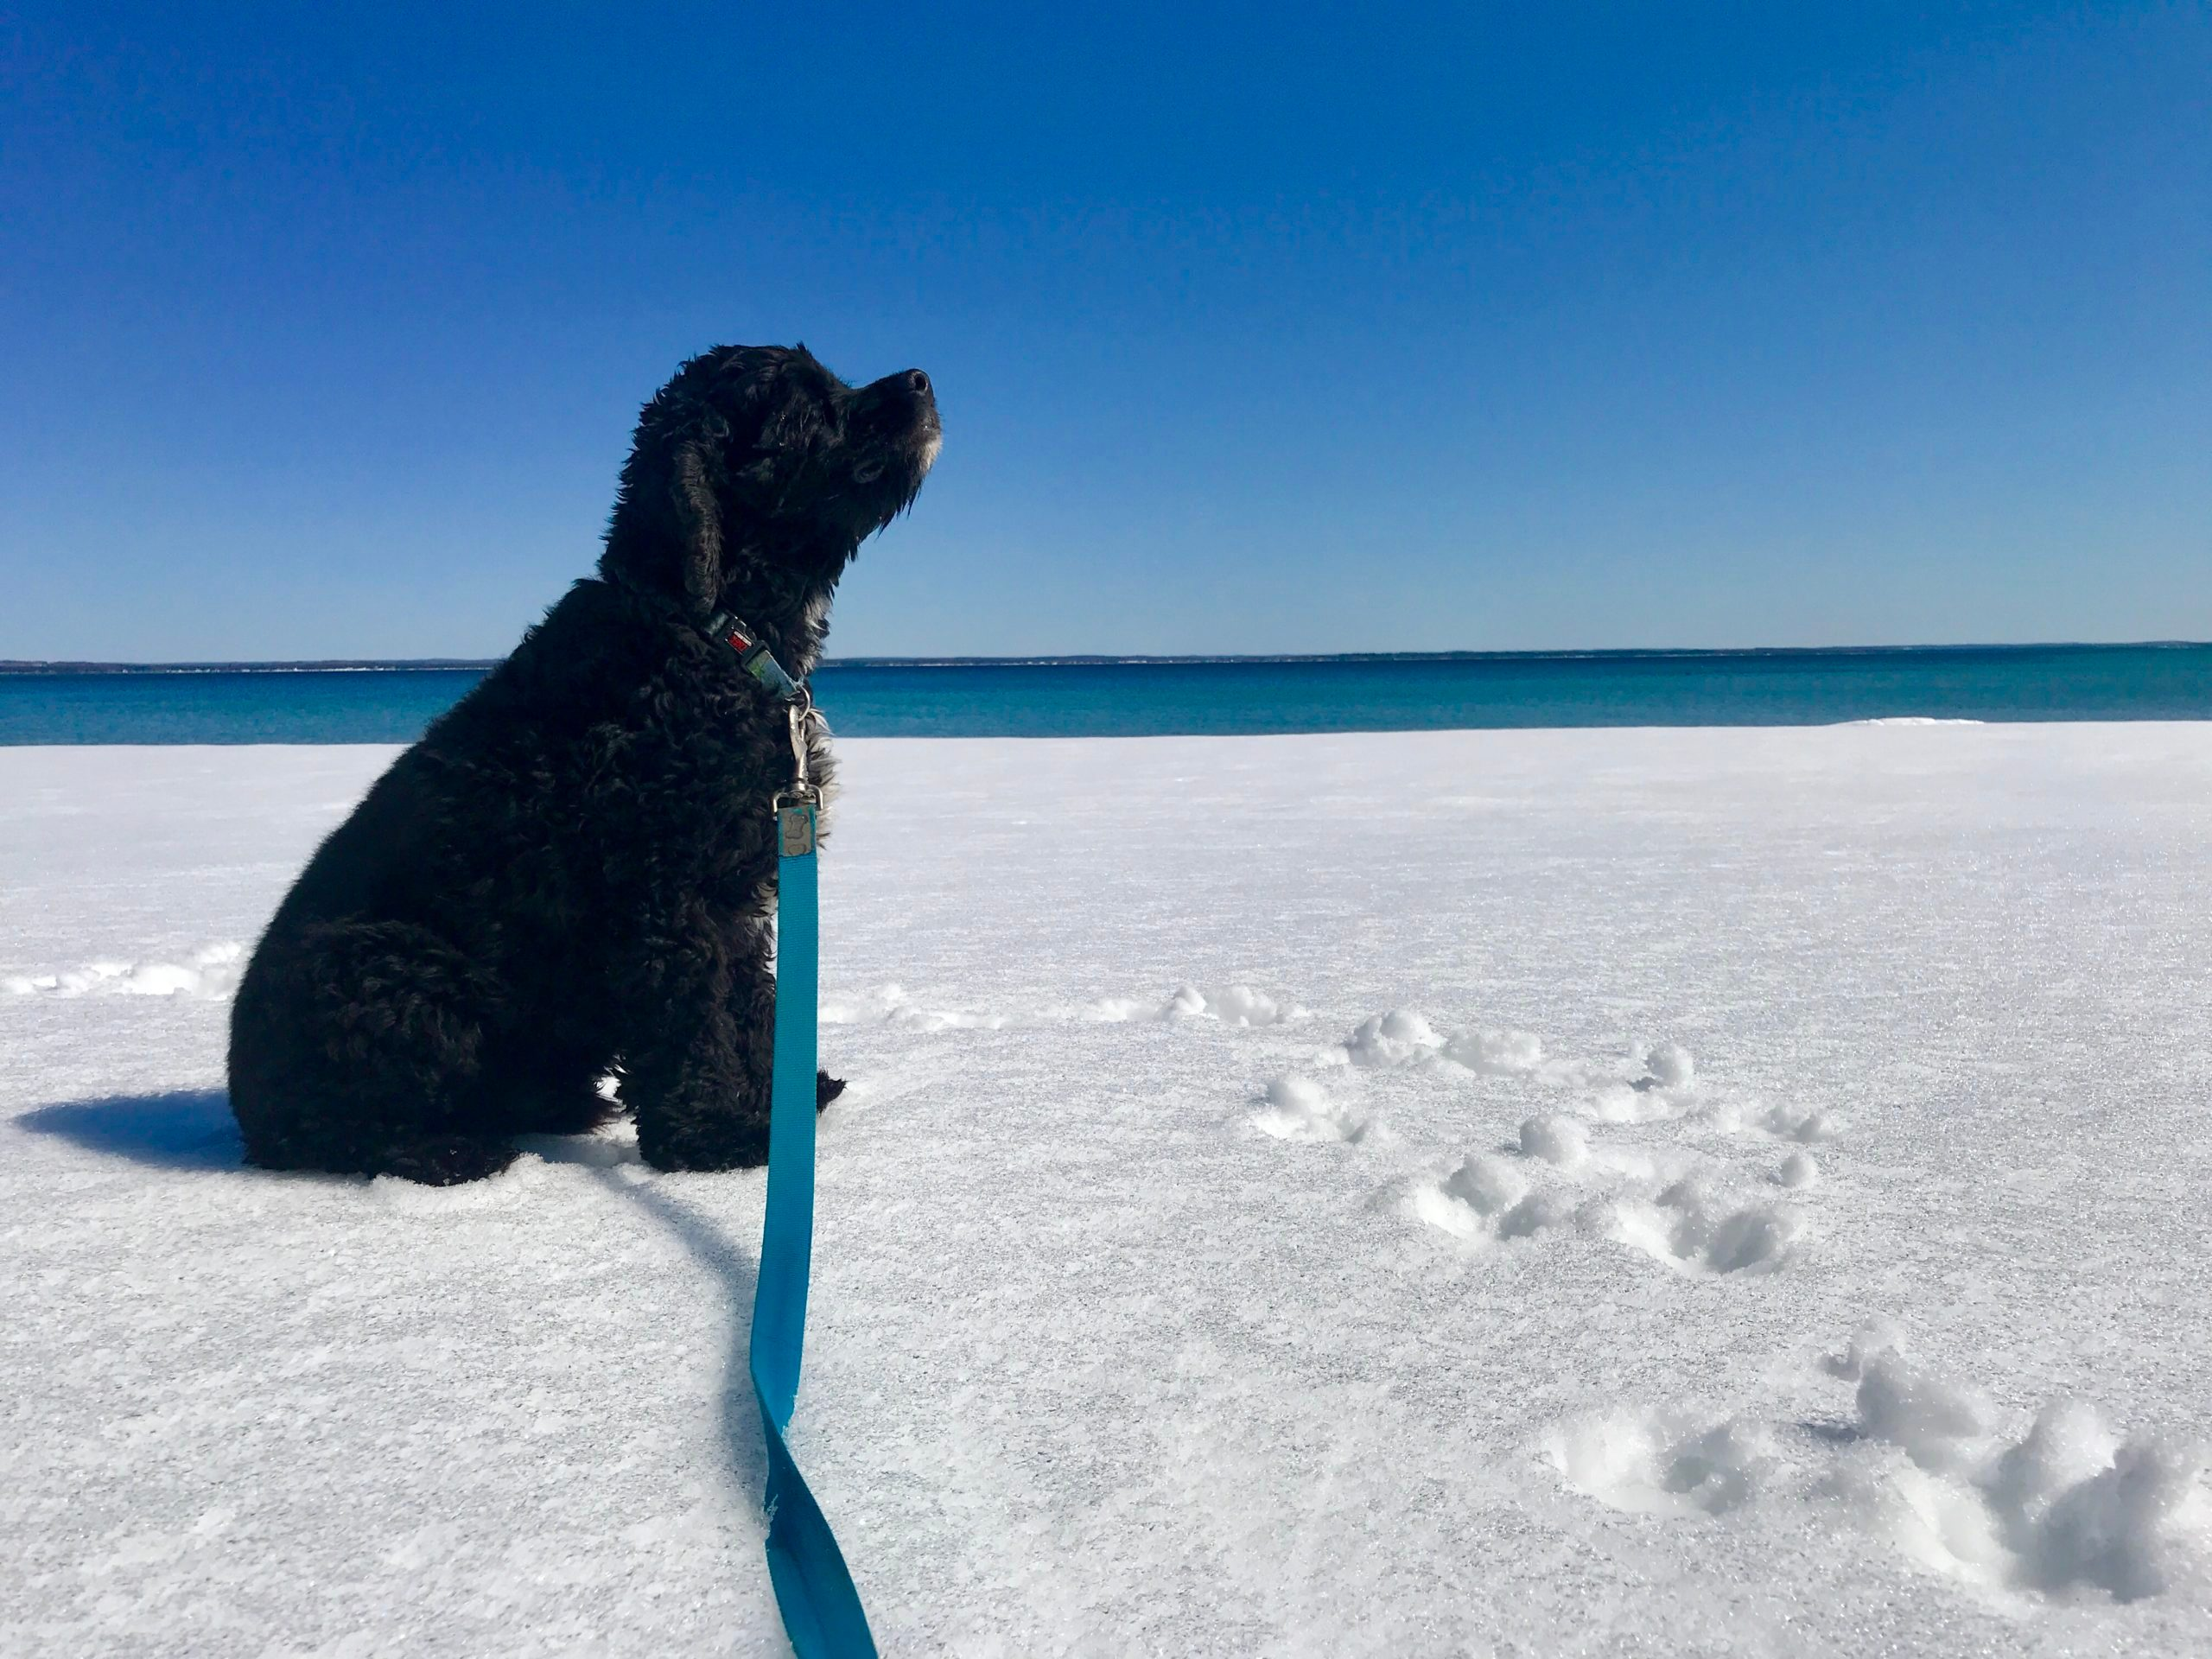 dog on a leash sitting in a snowy landscape near a body of water on a sunny day